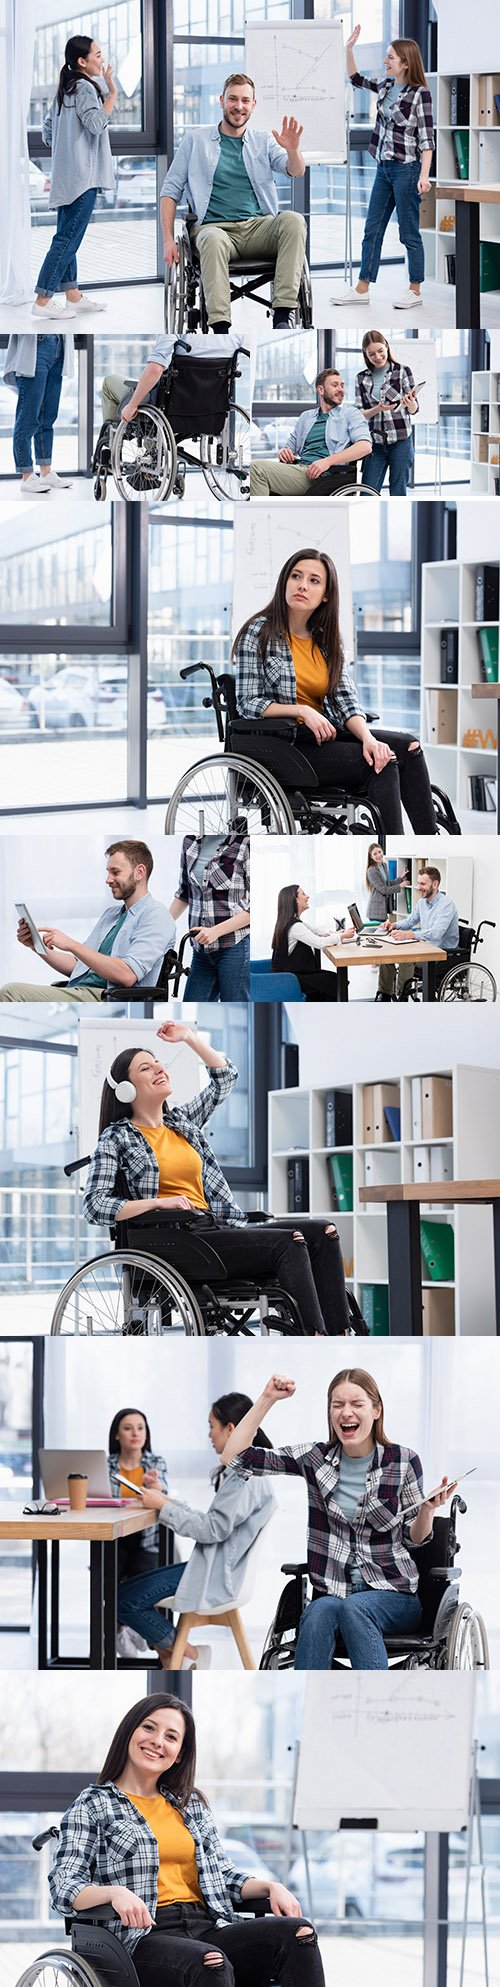 Business people with disabilities at work in office